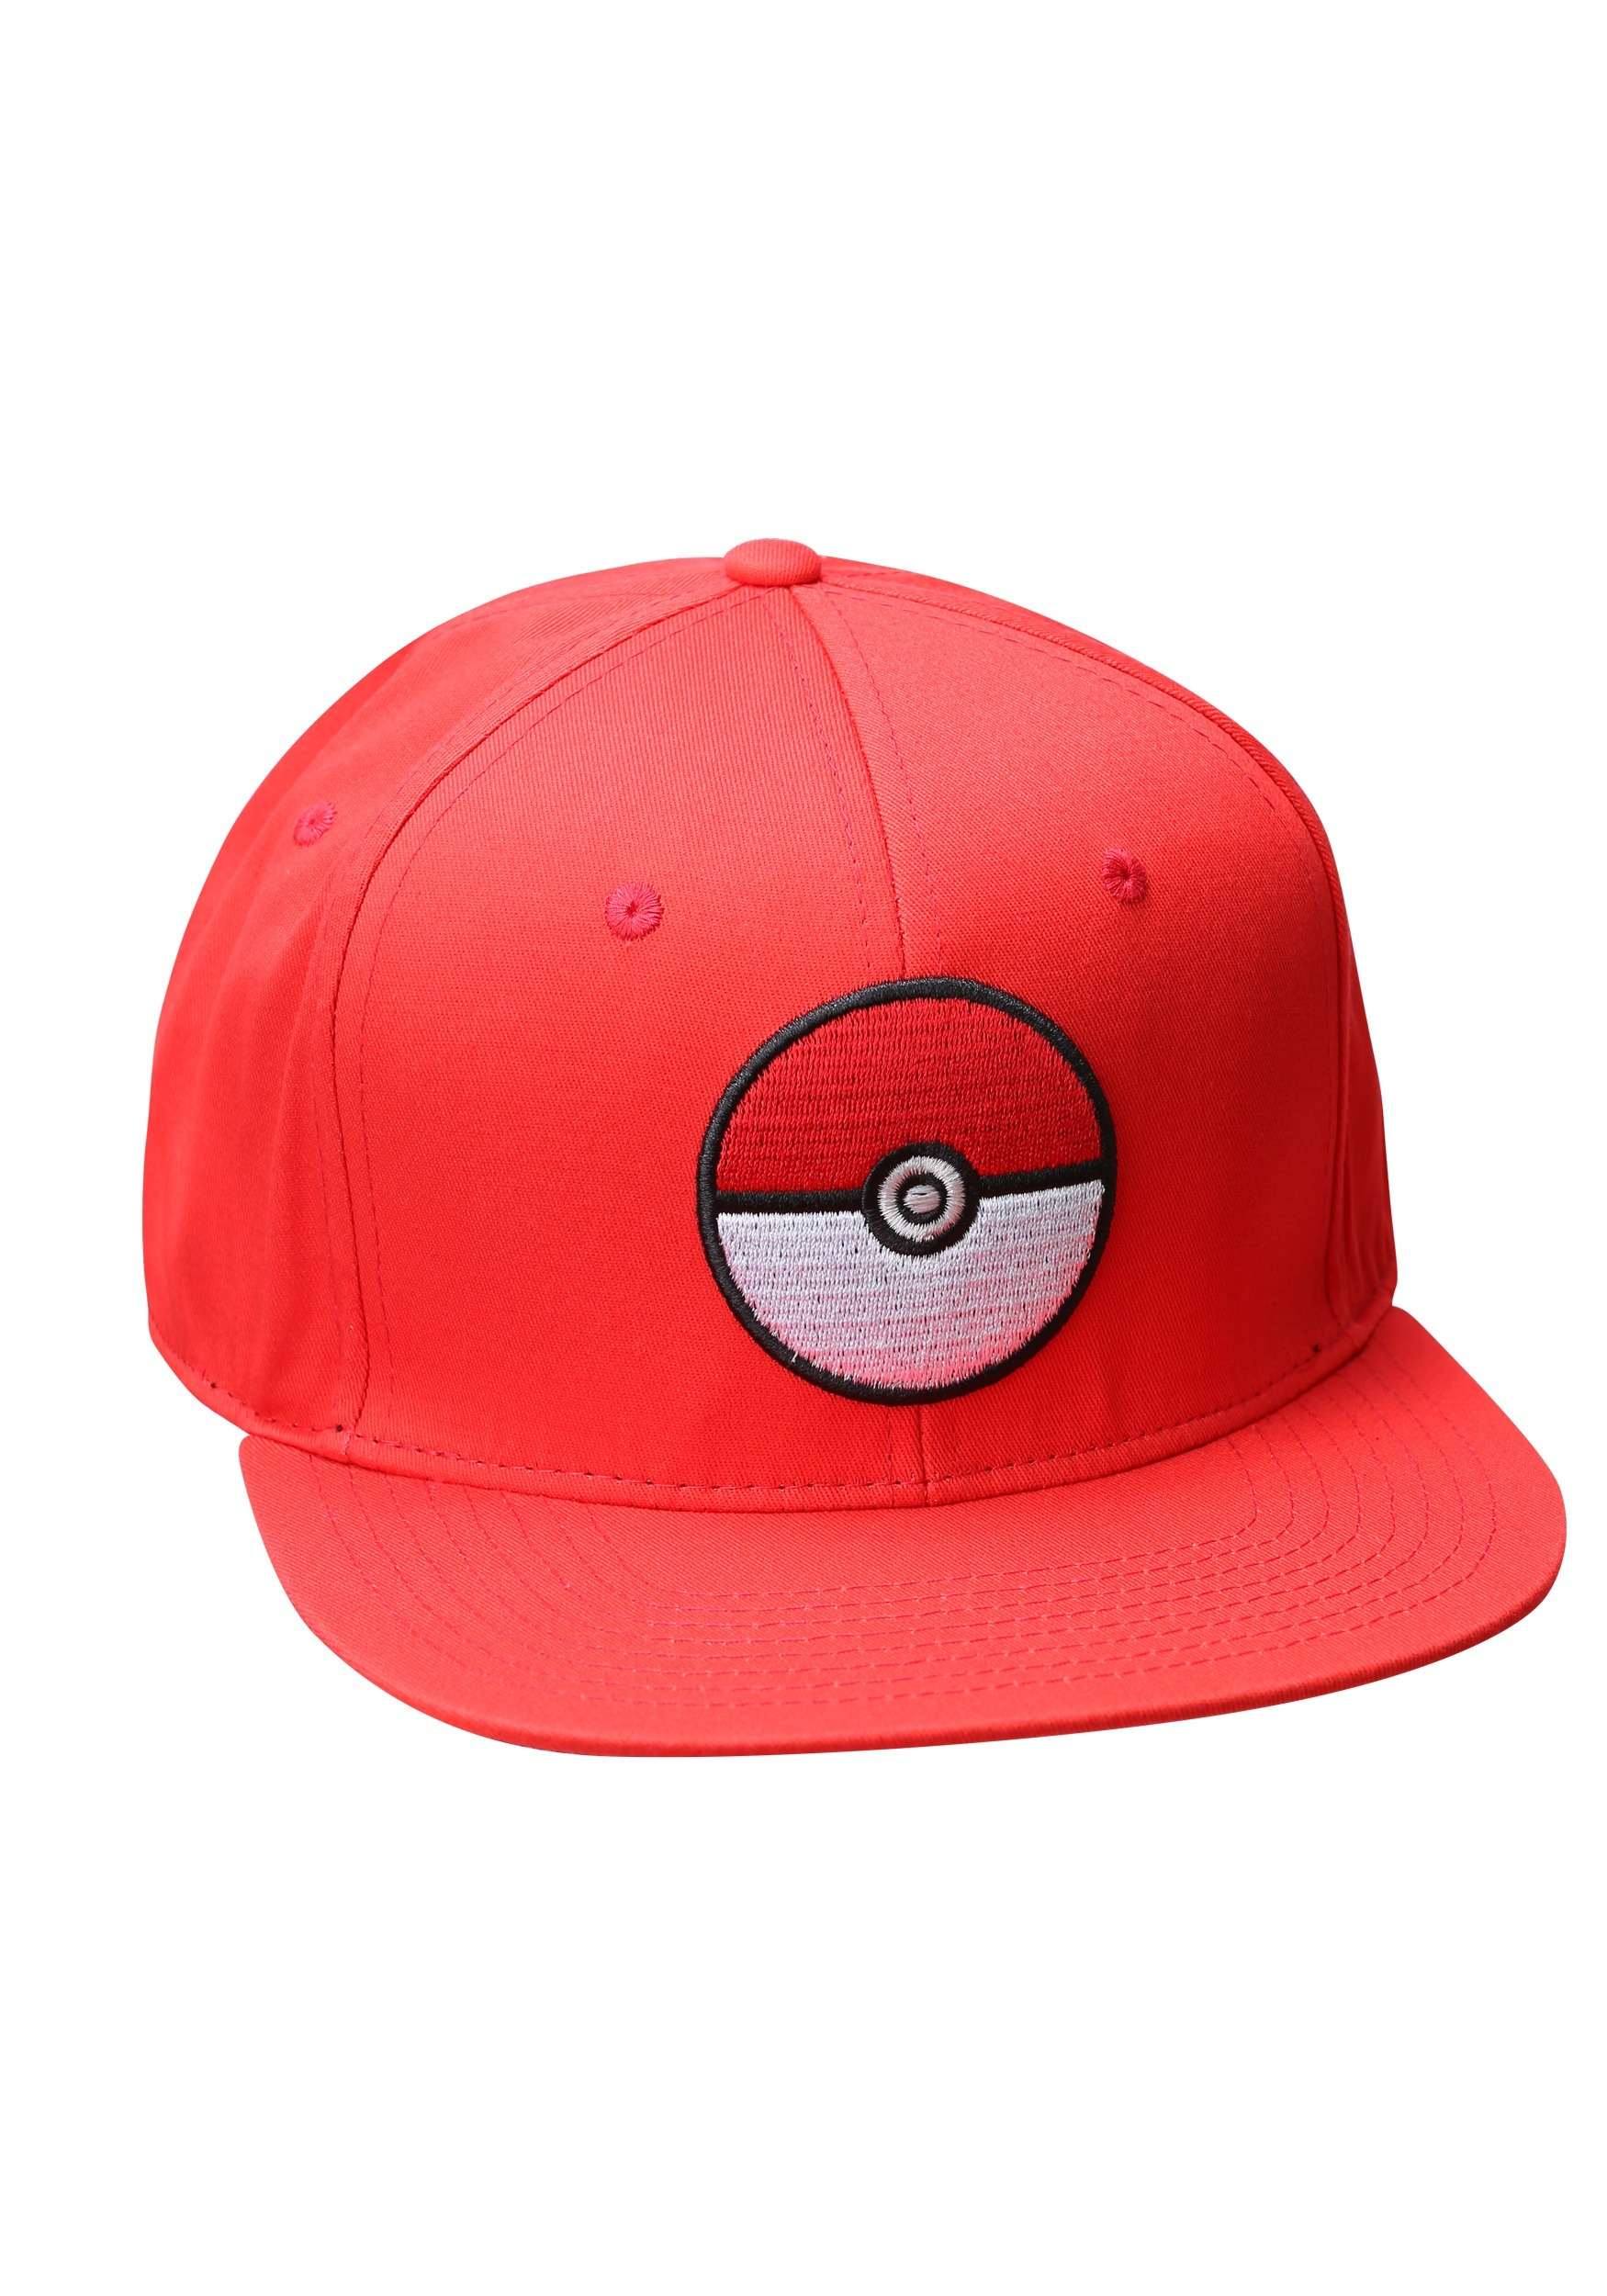 8a79be795a9 pokemon-pokeball-trainer-red-snapback-hat.jpg